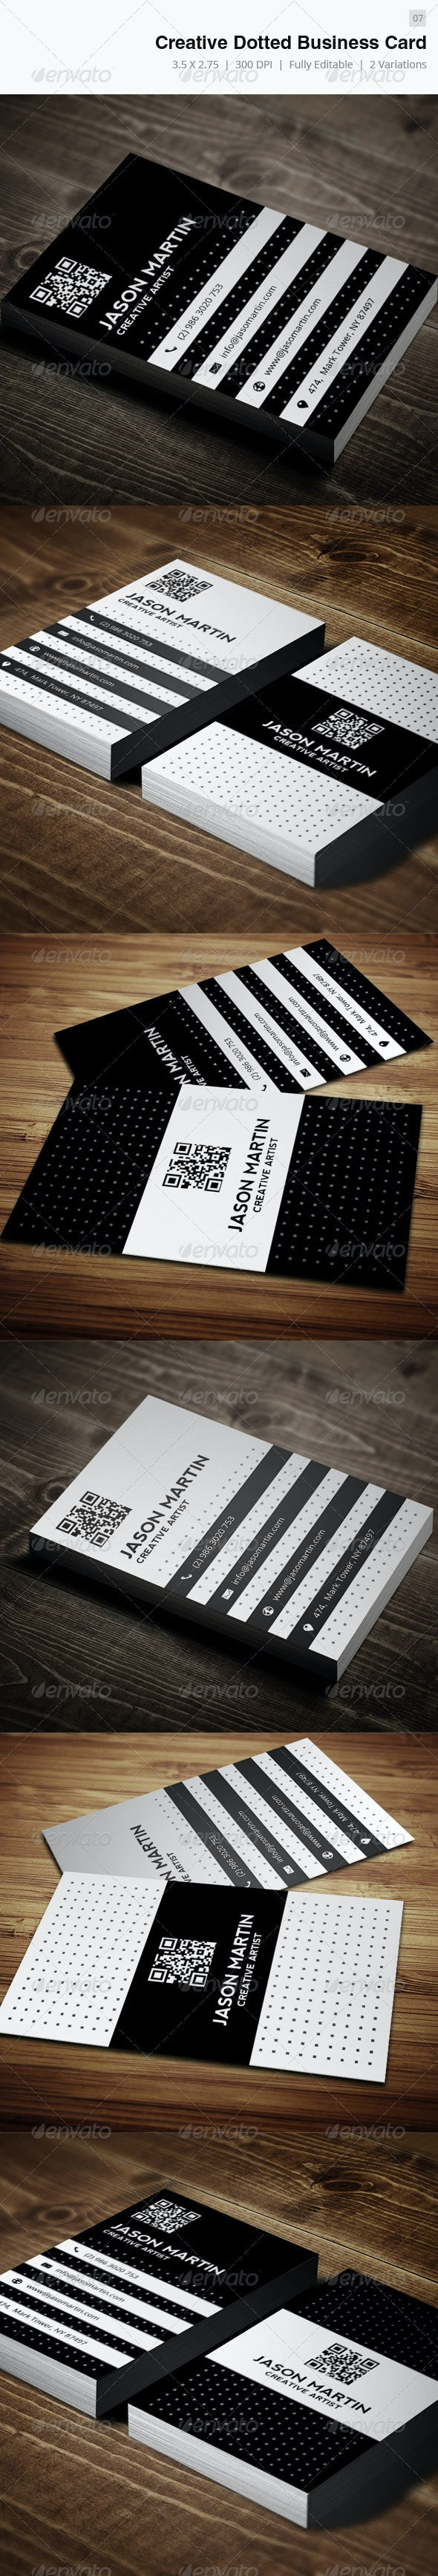 Creative Dotted Business Card - 07 - Creative Business Cards